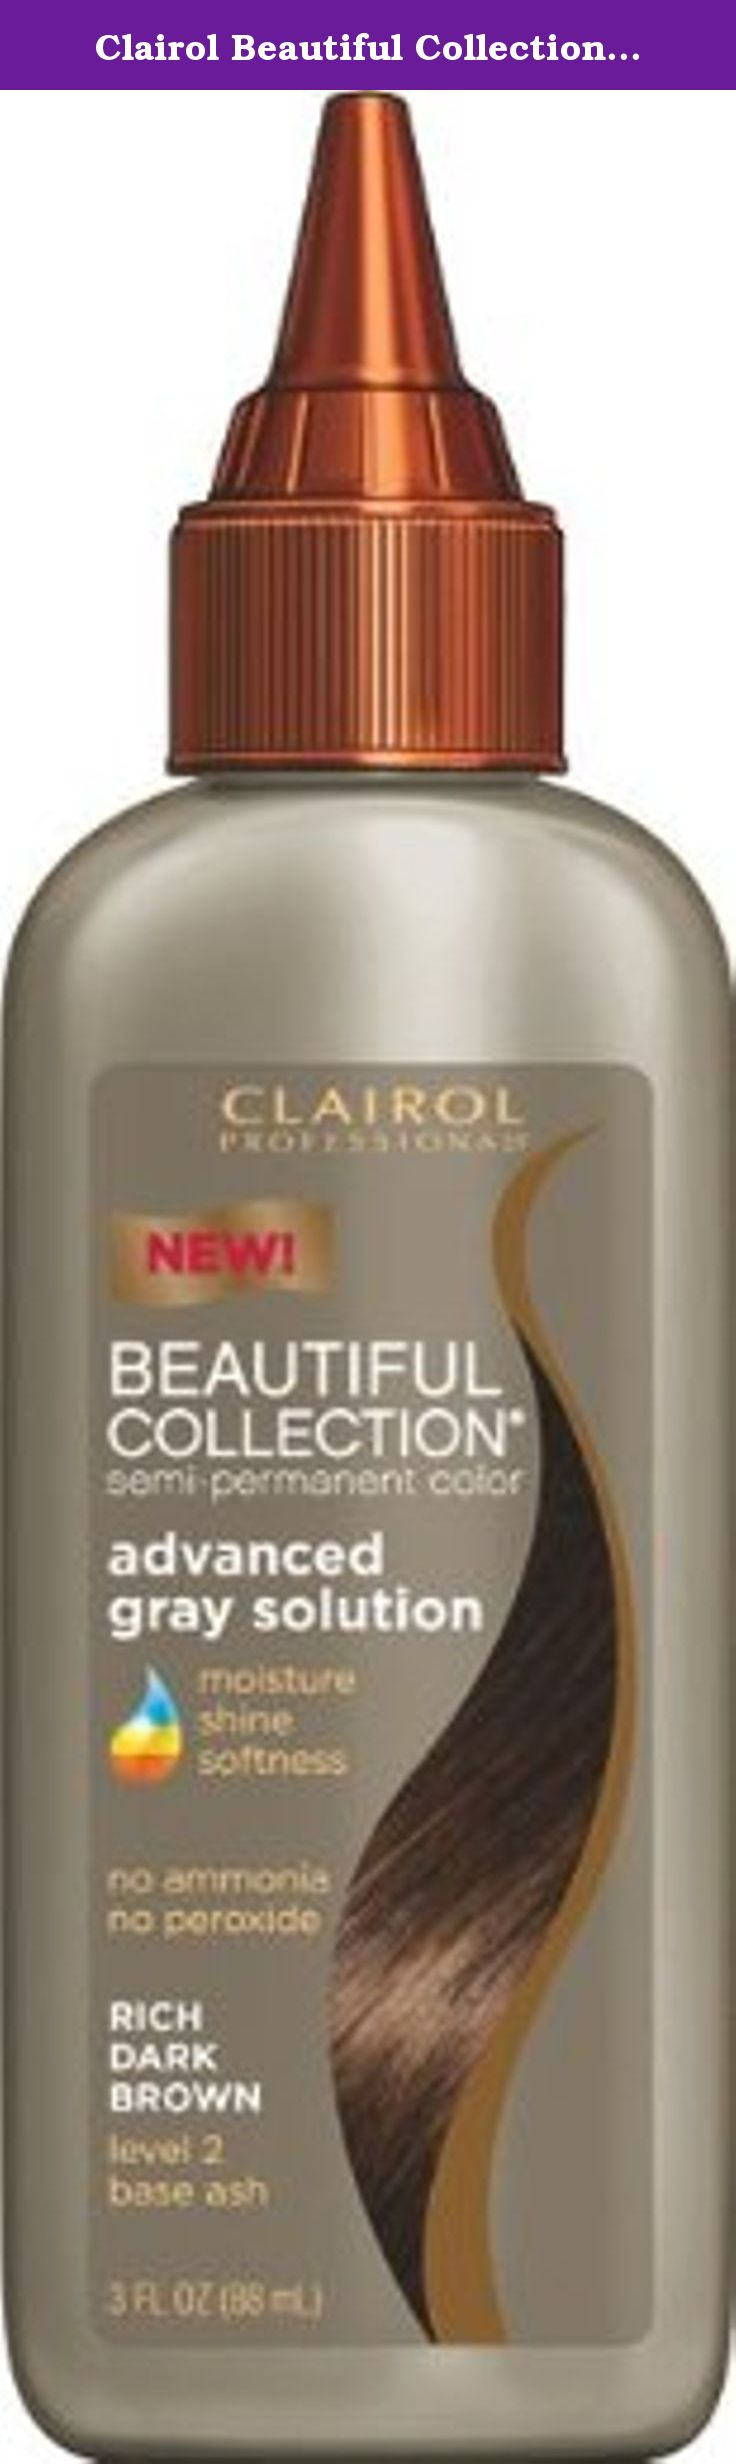 Clairol Beautiful Collection Advanced Gray Solution Hair Color 2a